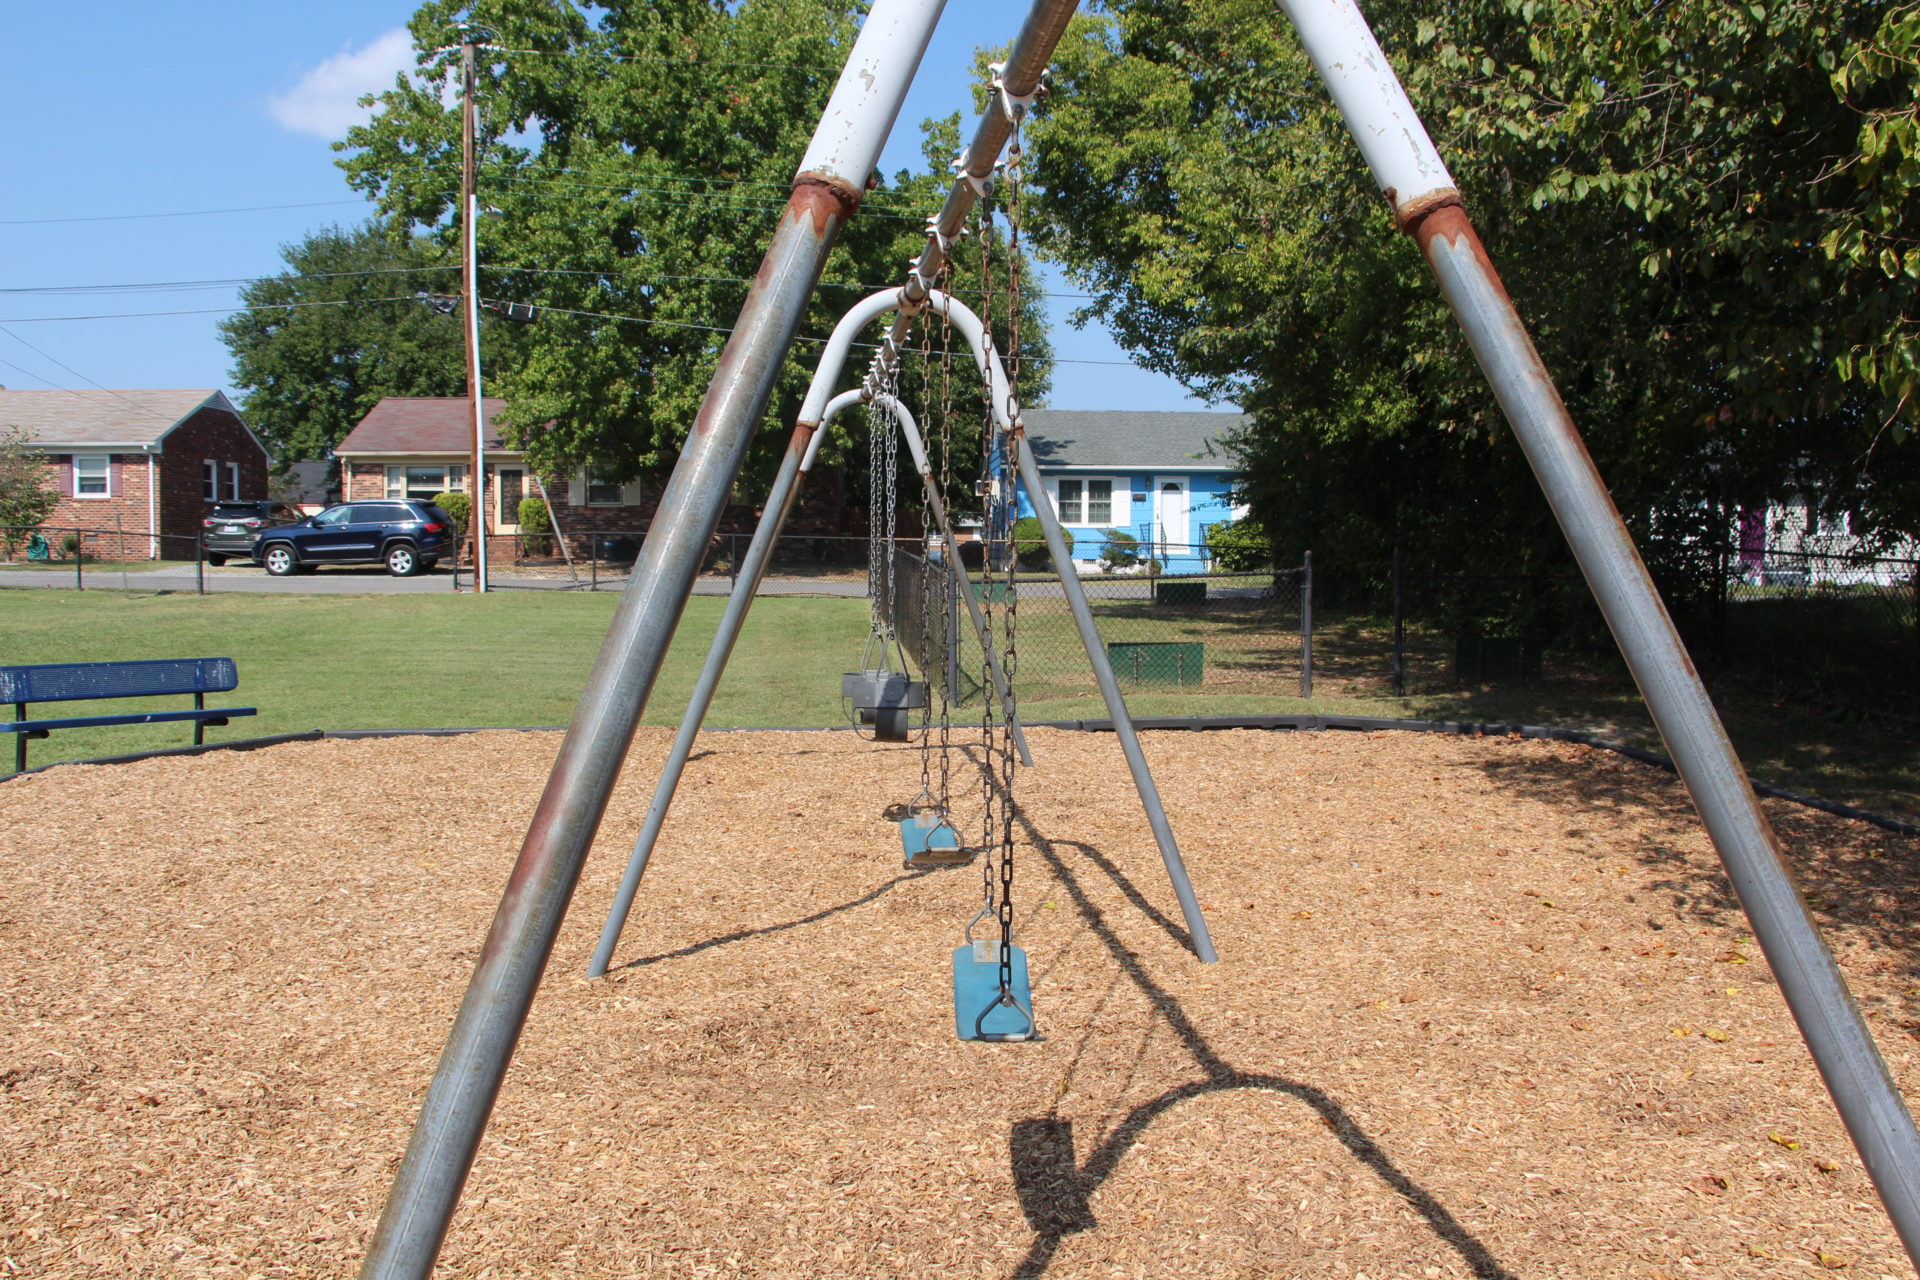 A set of playground swings.